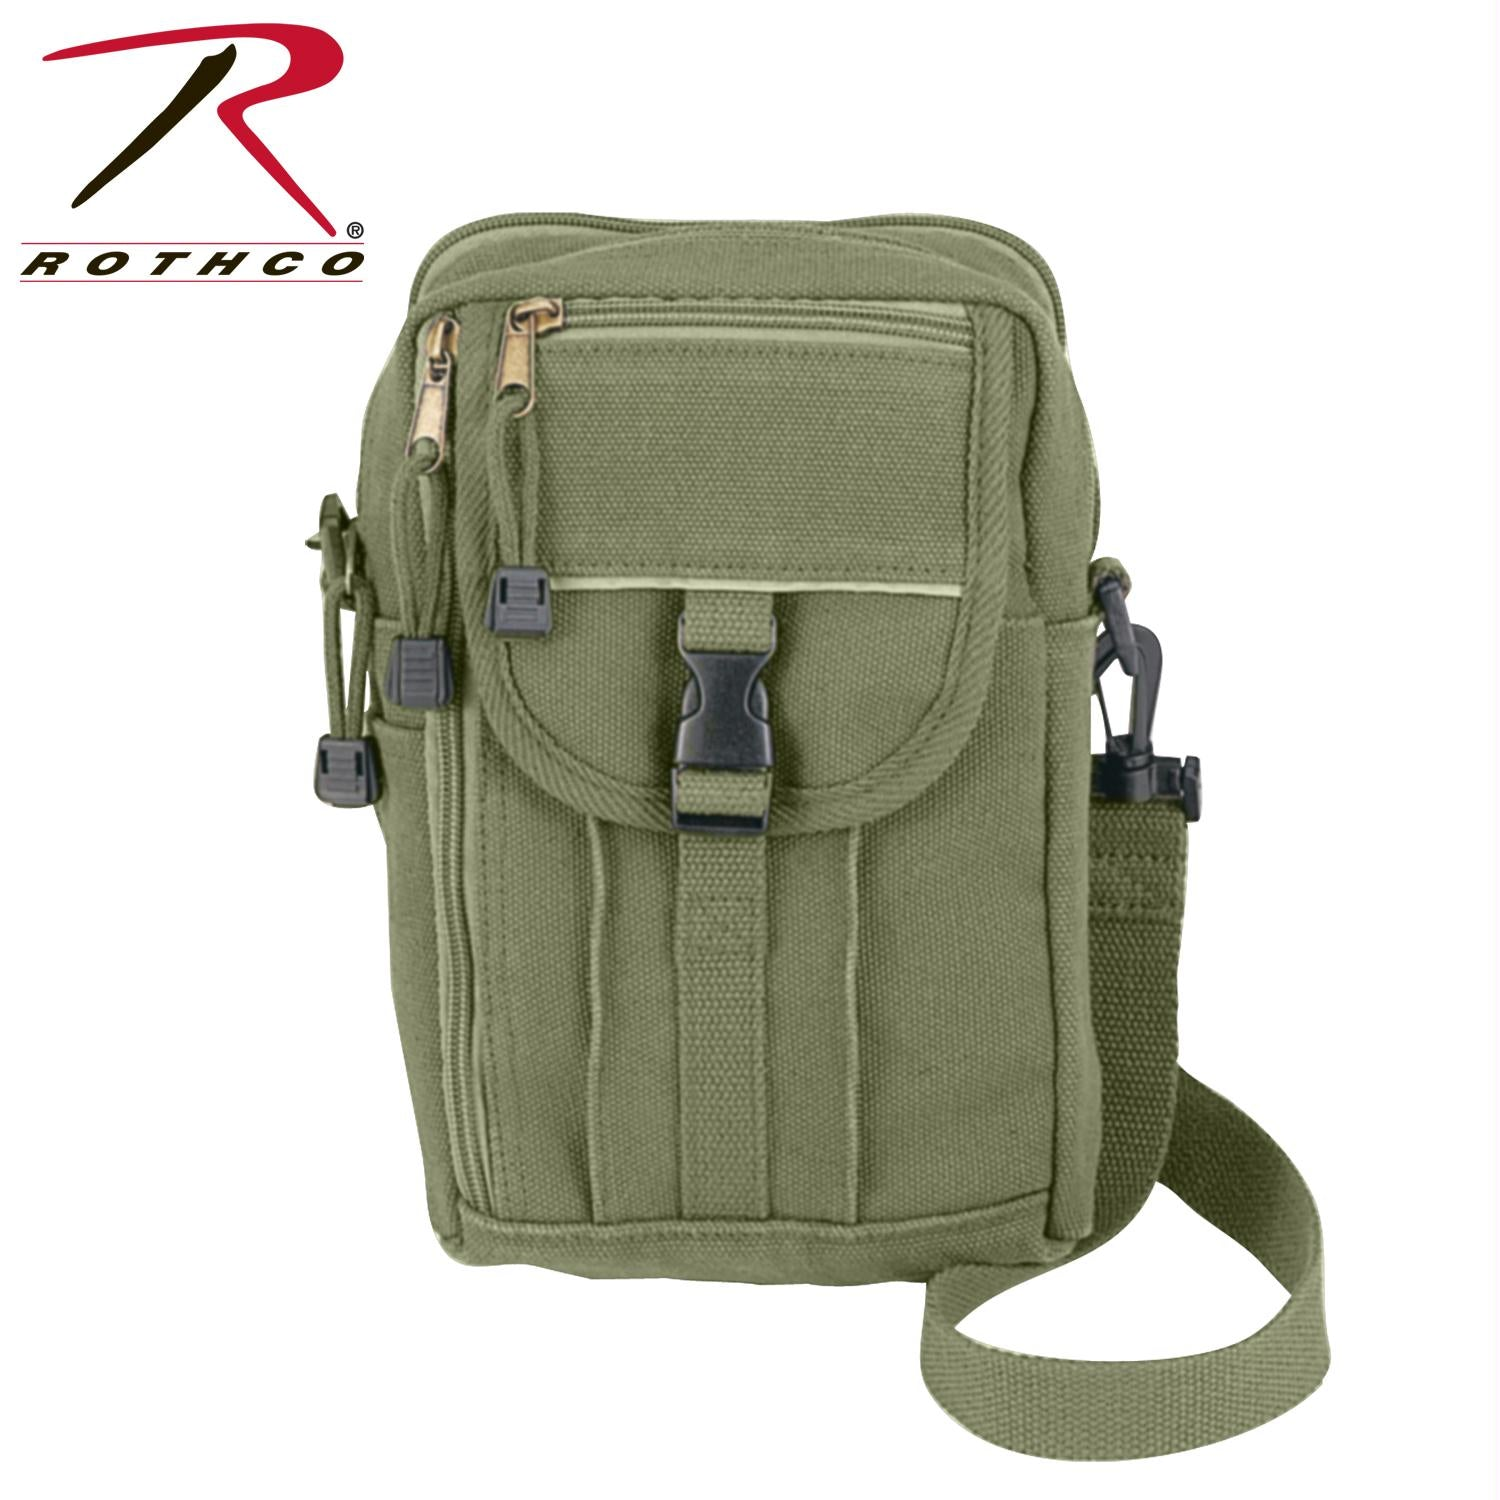 Rothco Heavyweight Canvas Classic Passport Travel Pouch - Olive Drab